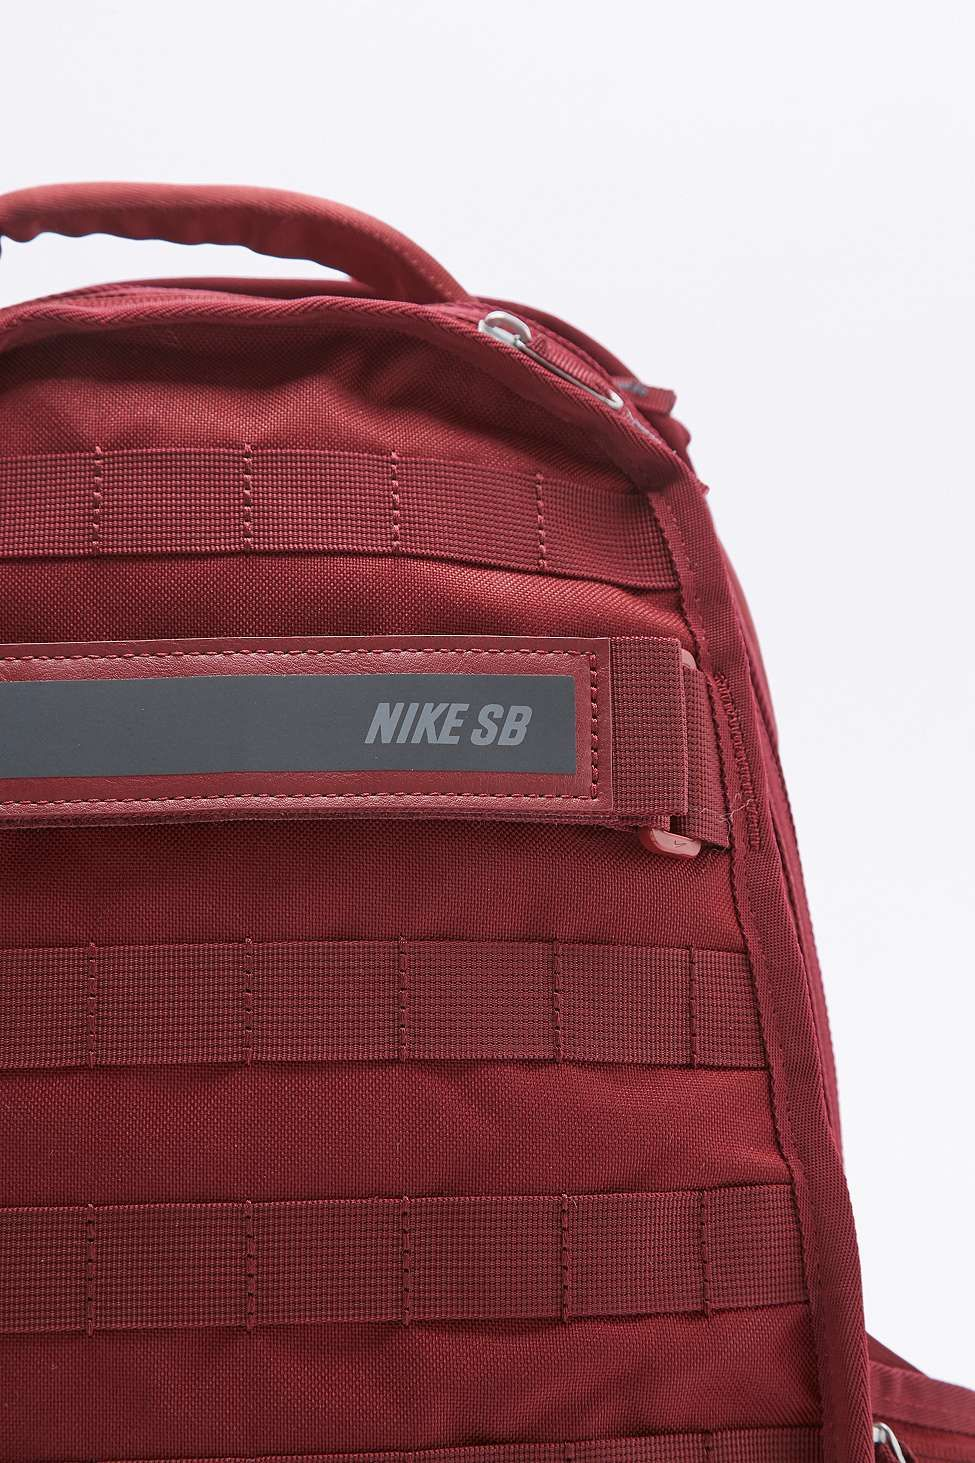 Nike Sb Backpack Rpm Red- Fenix Toulouse Handball a9b73654c3a68